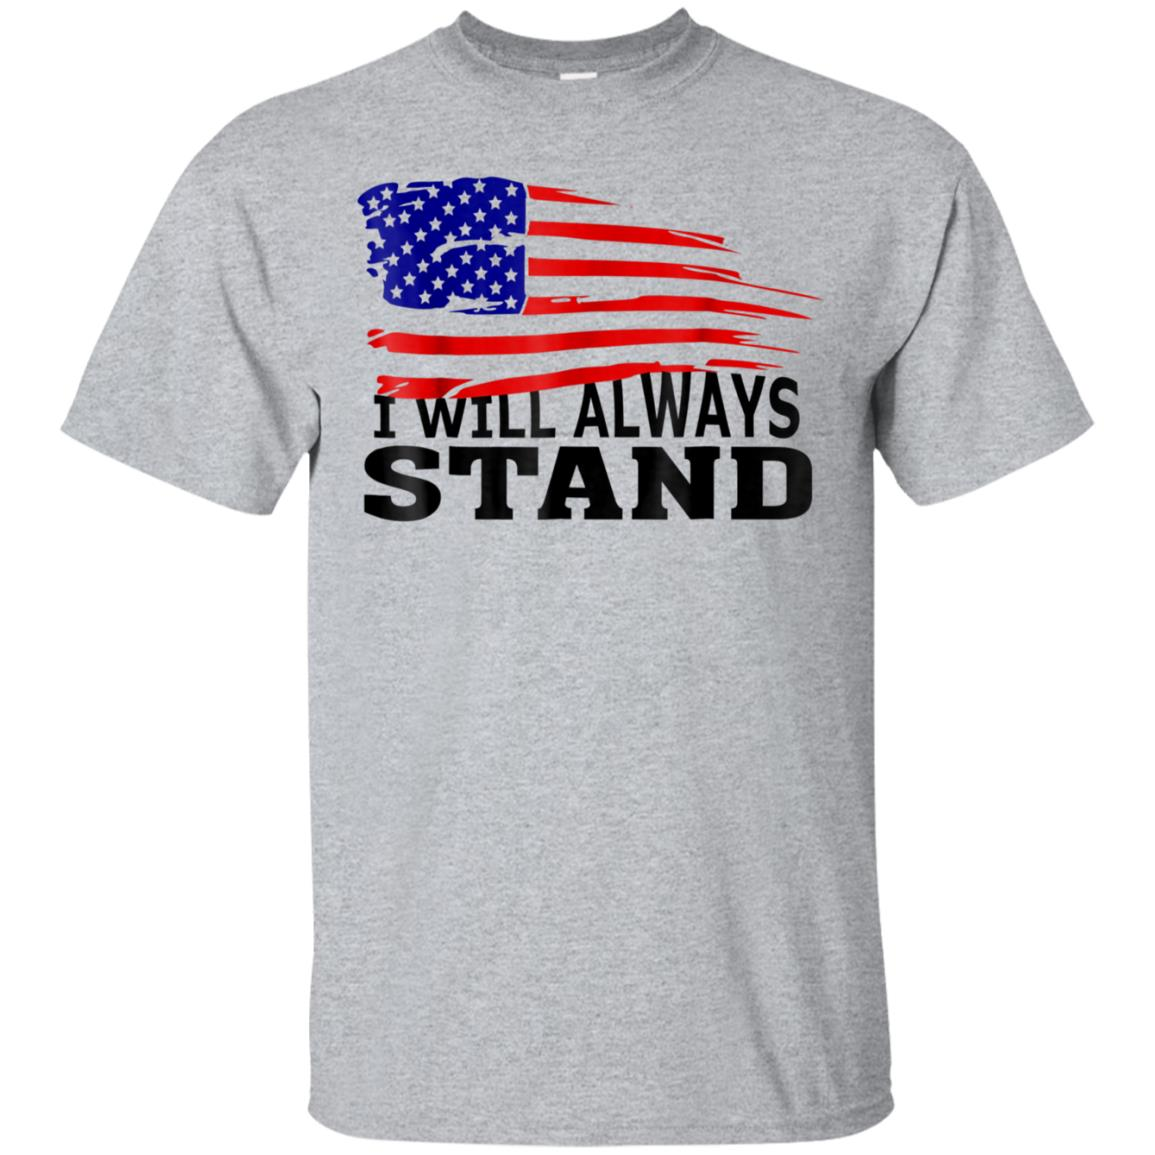 American Flag Tee I Will Always Stand T- Shirt Veterans Gift 99promocode